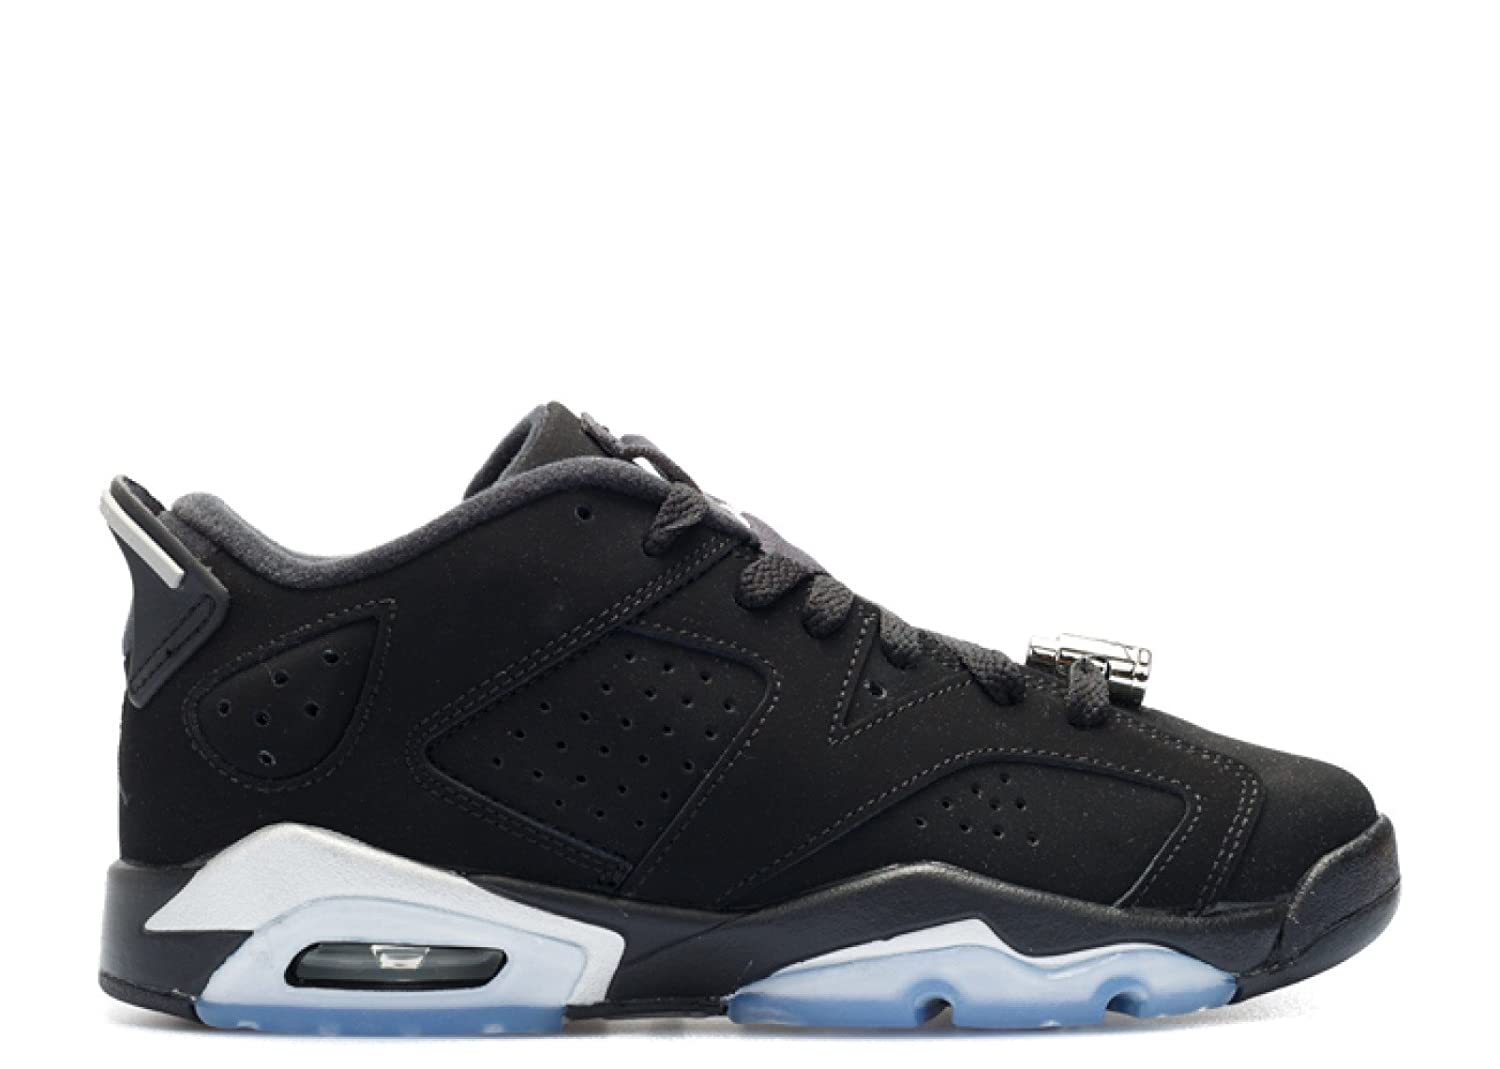 521119f418631 Nike Boys Air Jordan 6 Retro Low BG Chrome Black/Metallic Silver-White  Leather